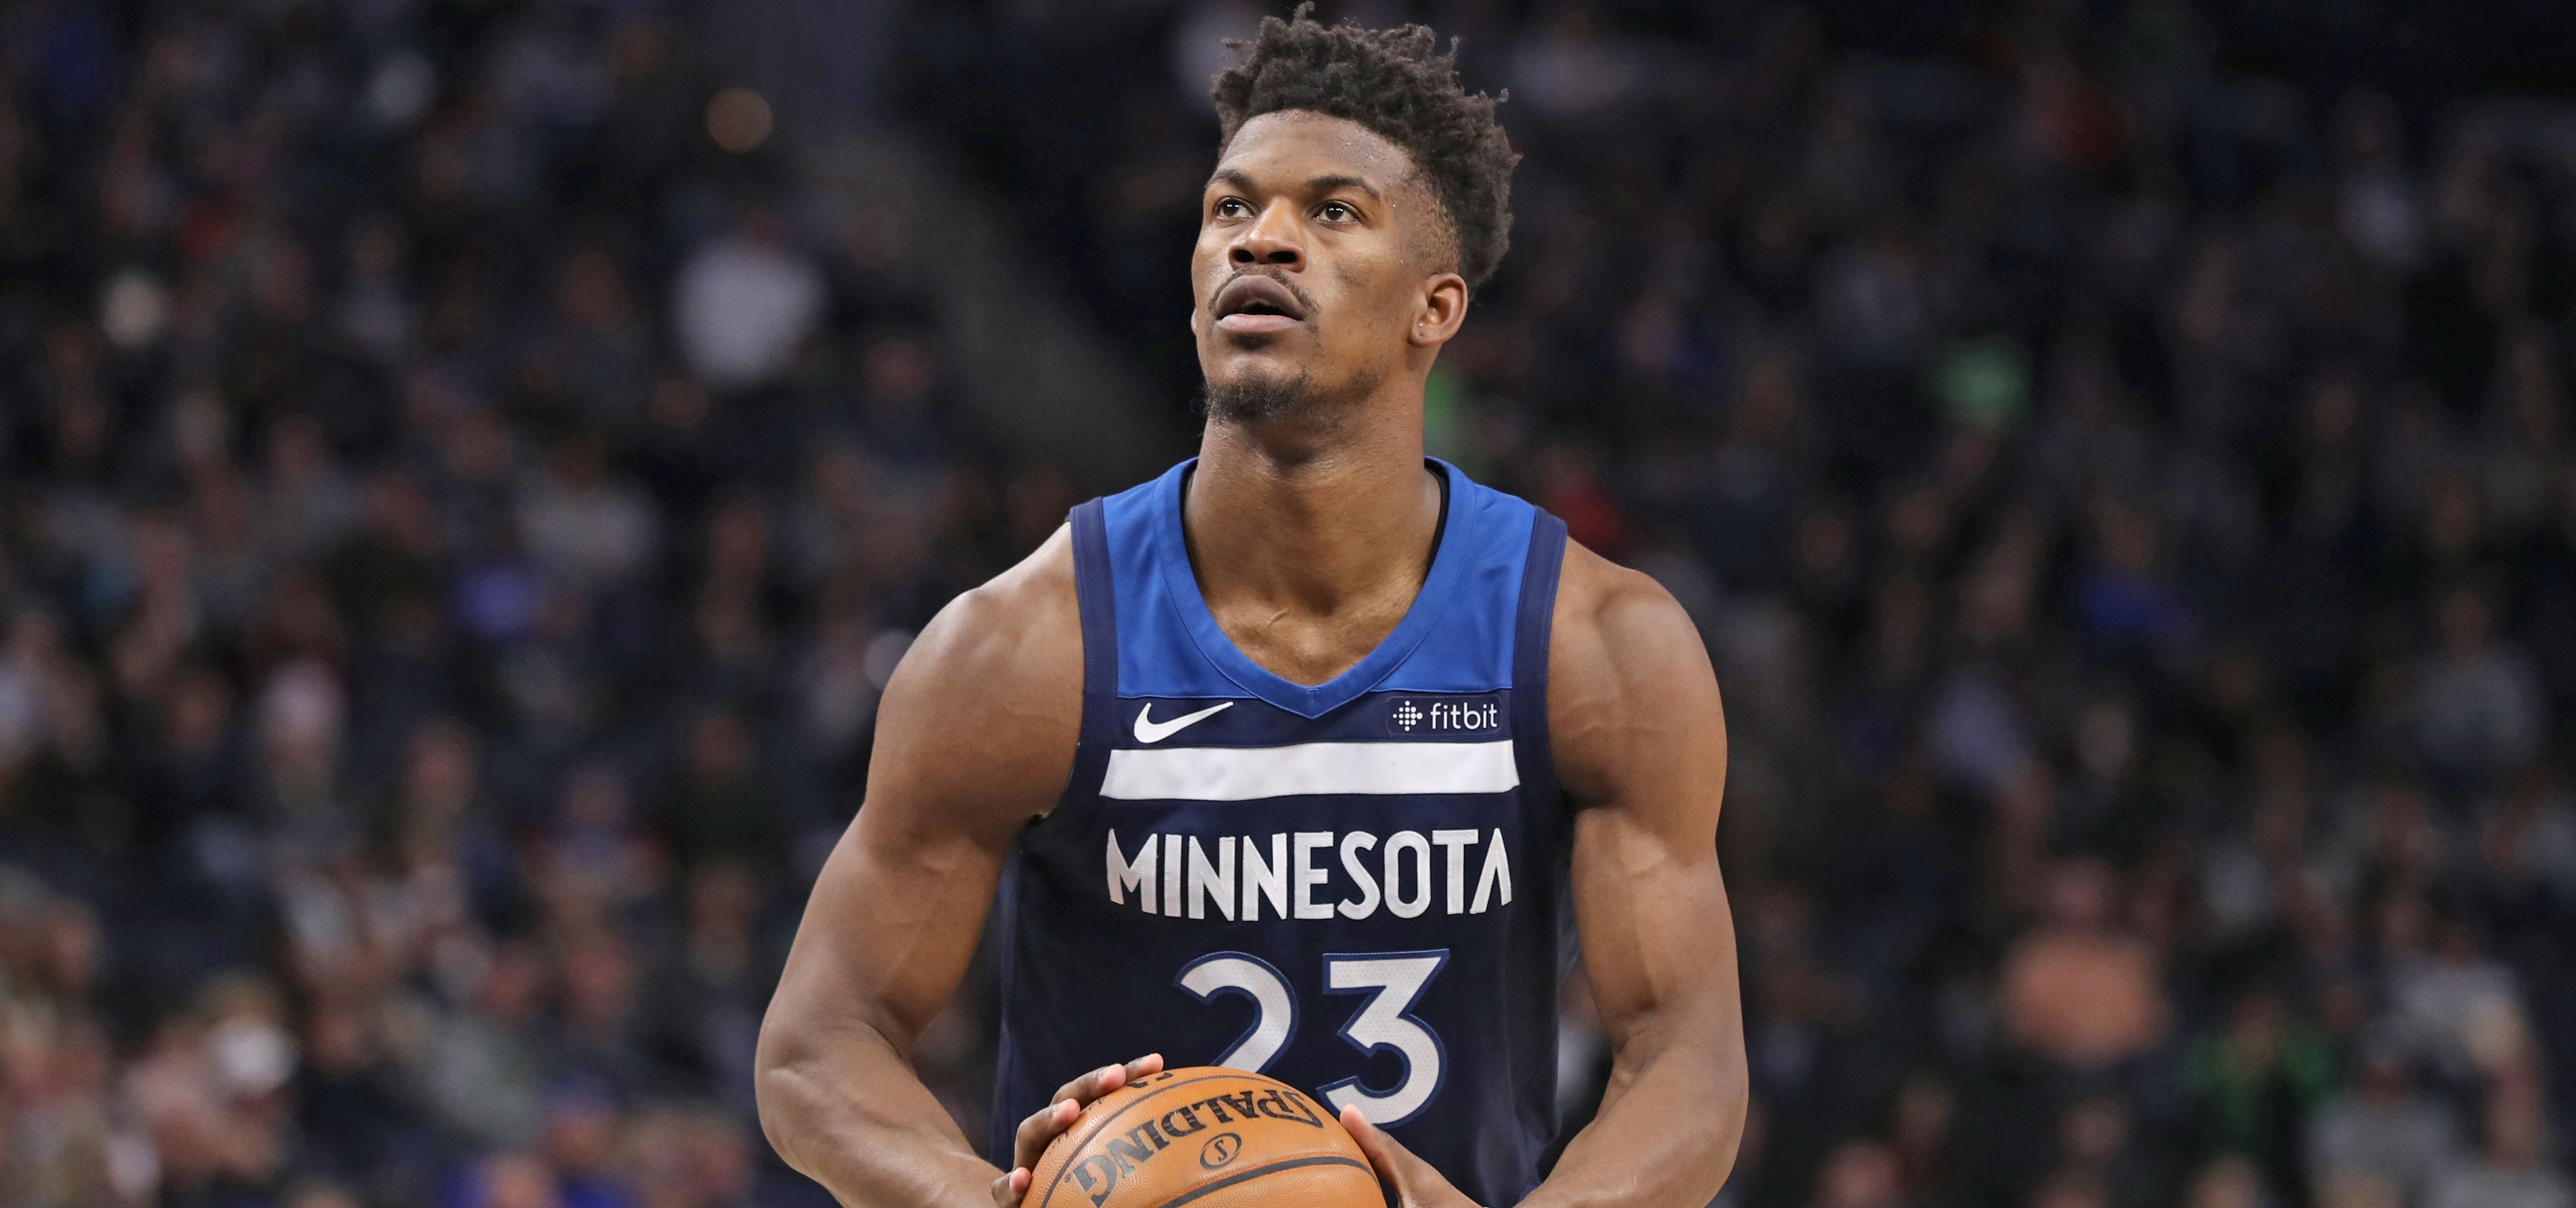 Jimmy Butler Continues To Lead As He Works Towards Return ... edcc468af